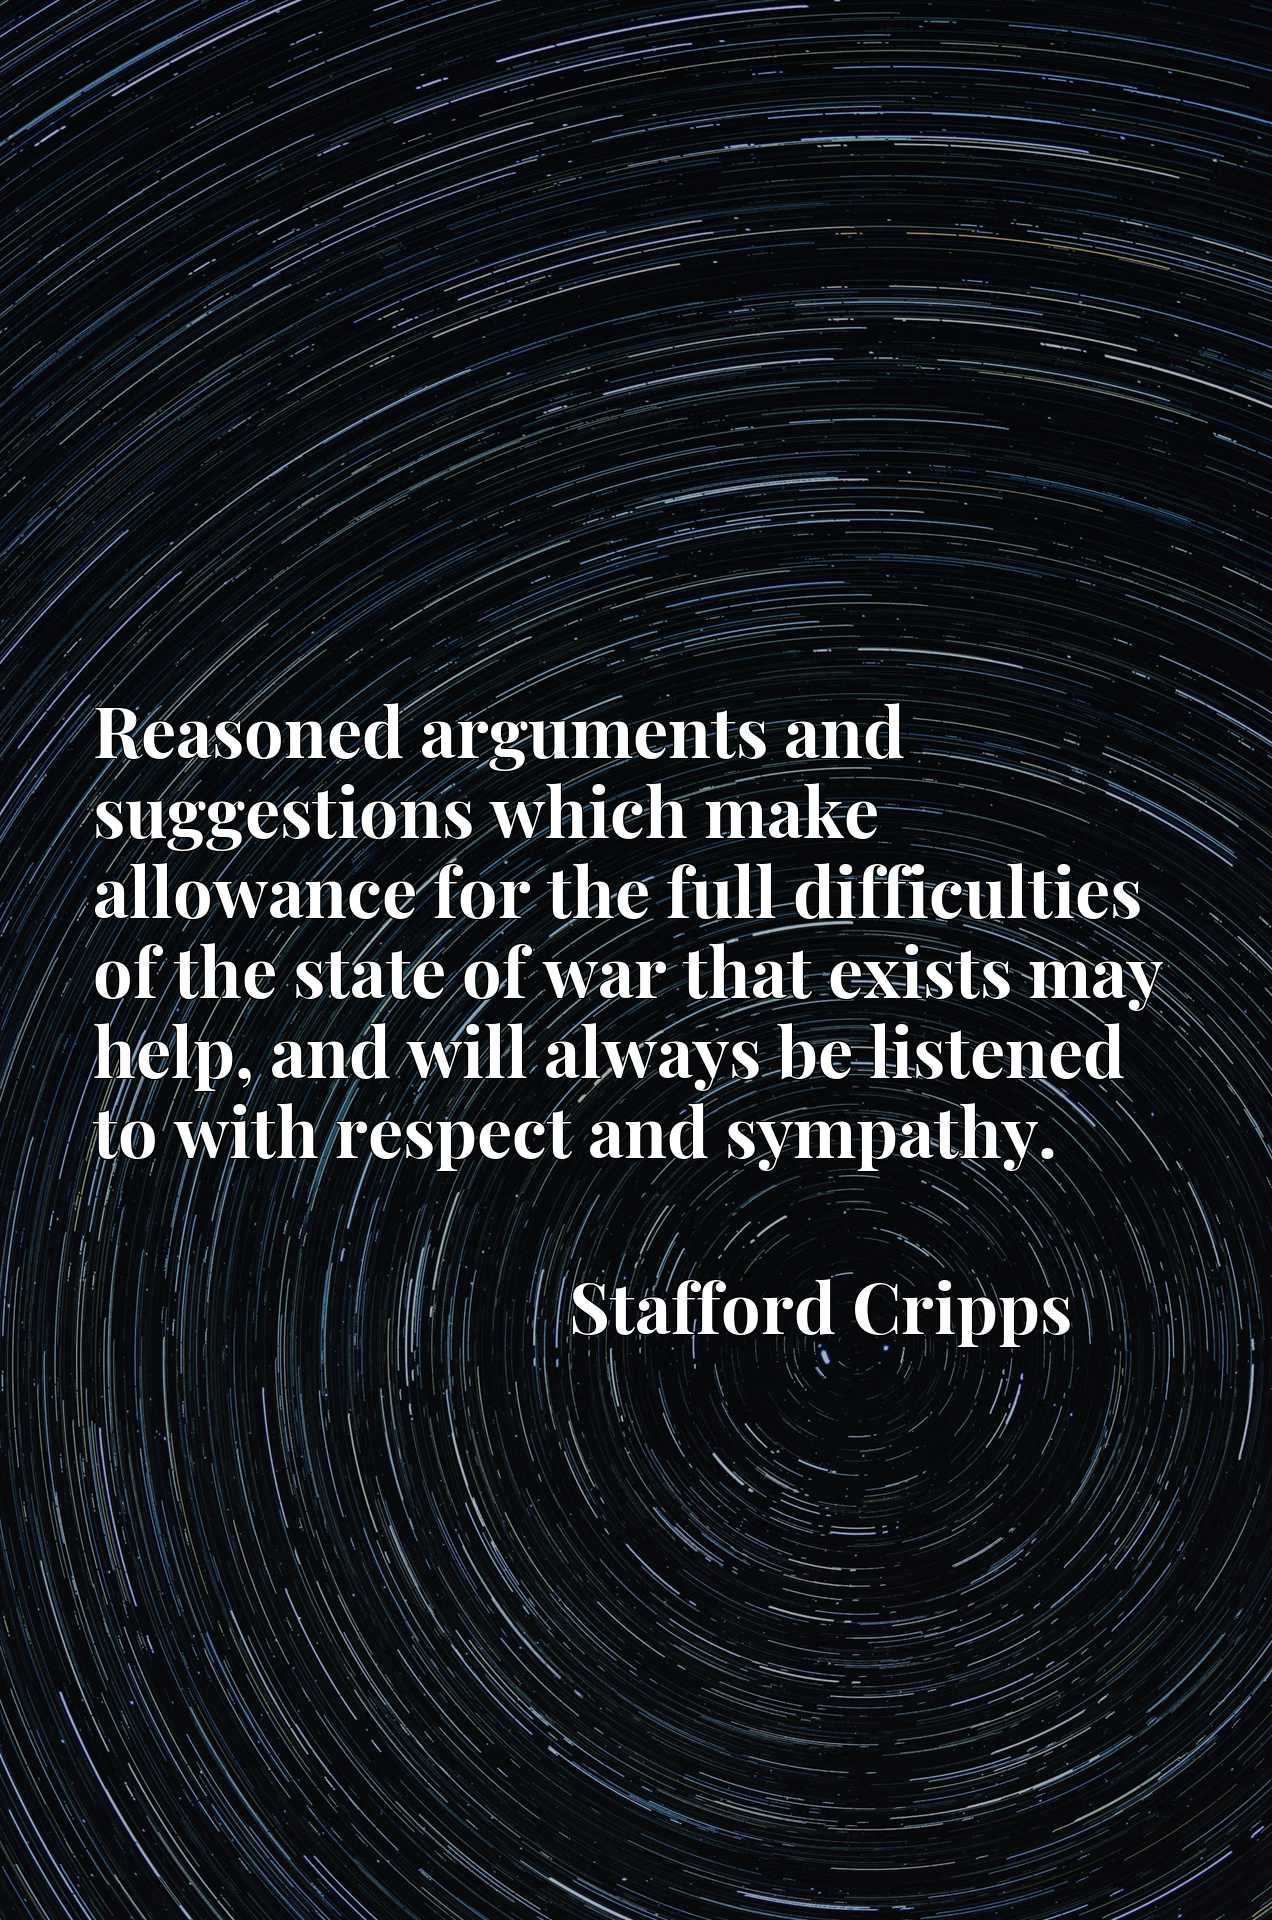 Quote Picture :Reasoned arguments and suggestions which make allowance for the full difficulties of the state of war that exists may help, and will always be listened to with respect and sympathy.